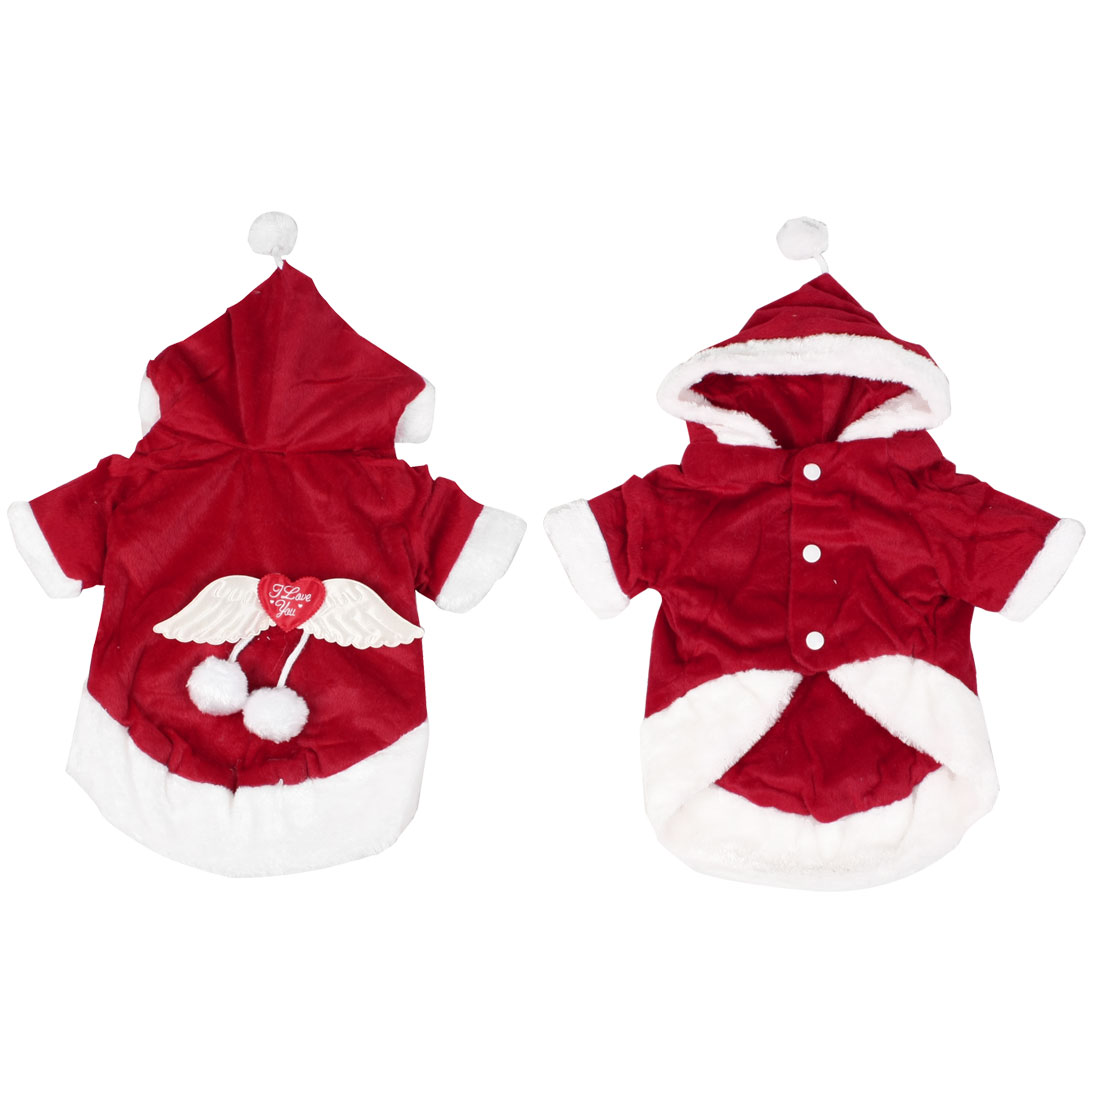 Christmas Winter Plush Hooded Dog Clothes Coat Puppy Clothing S